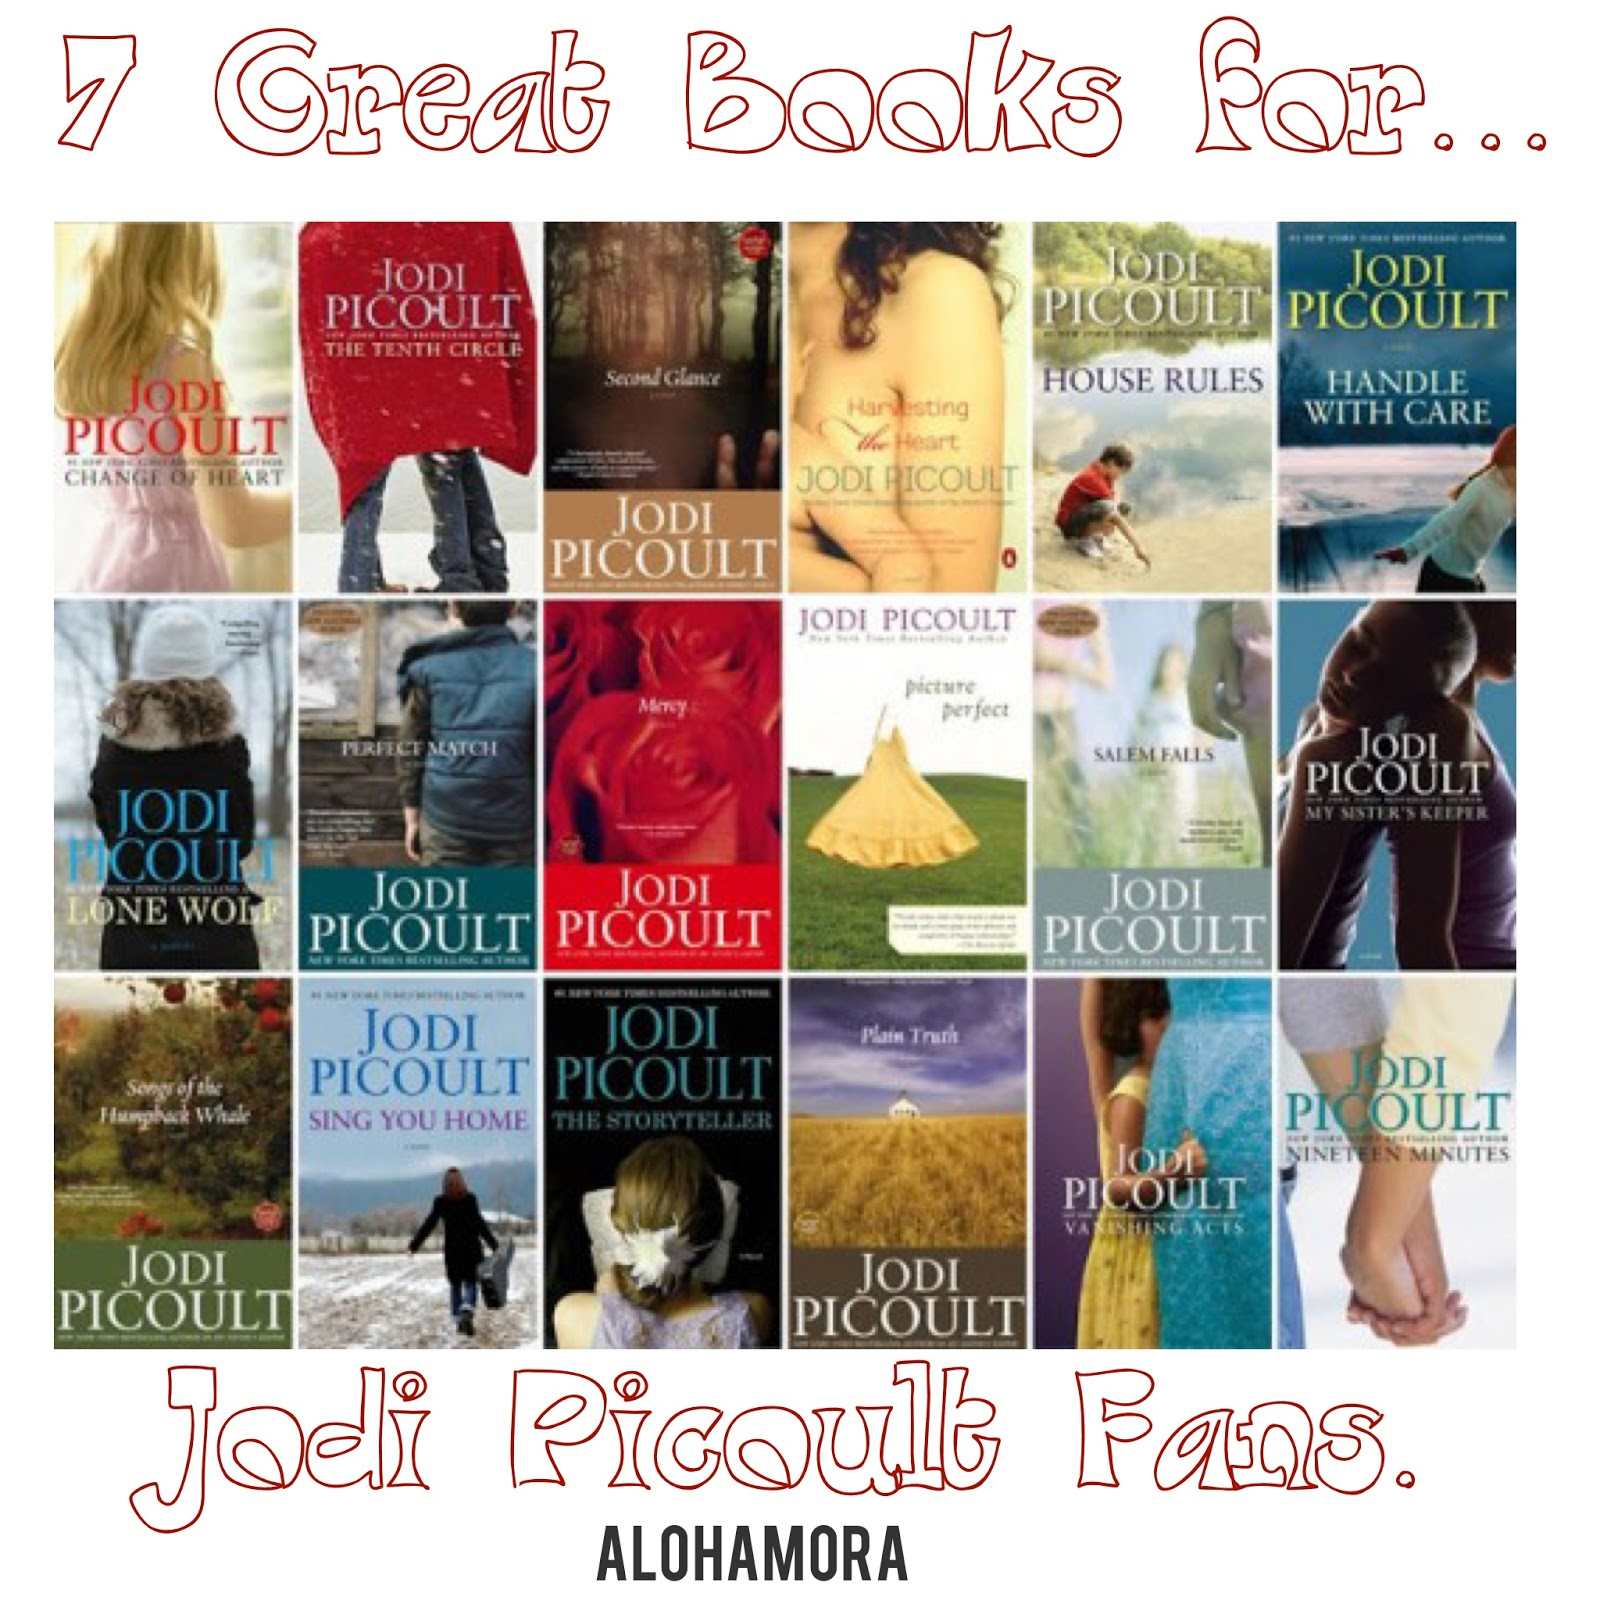 7 Great Books to read if you like Jodi Picoult books.  Emotional, complex, all about perspective, morally tough, family, and so much more. Great and fabulous books that will have you hanging on every word and reading until the wee hours. Alohamora Open a Book http://alohamoraopenabook.blogspot.com/